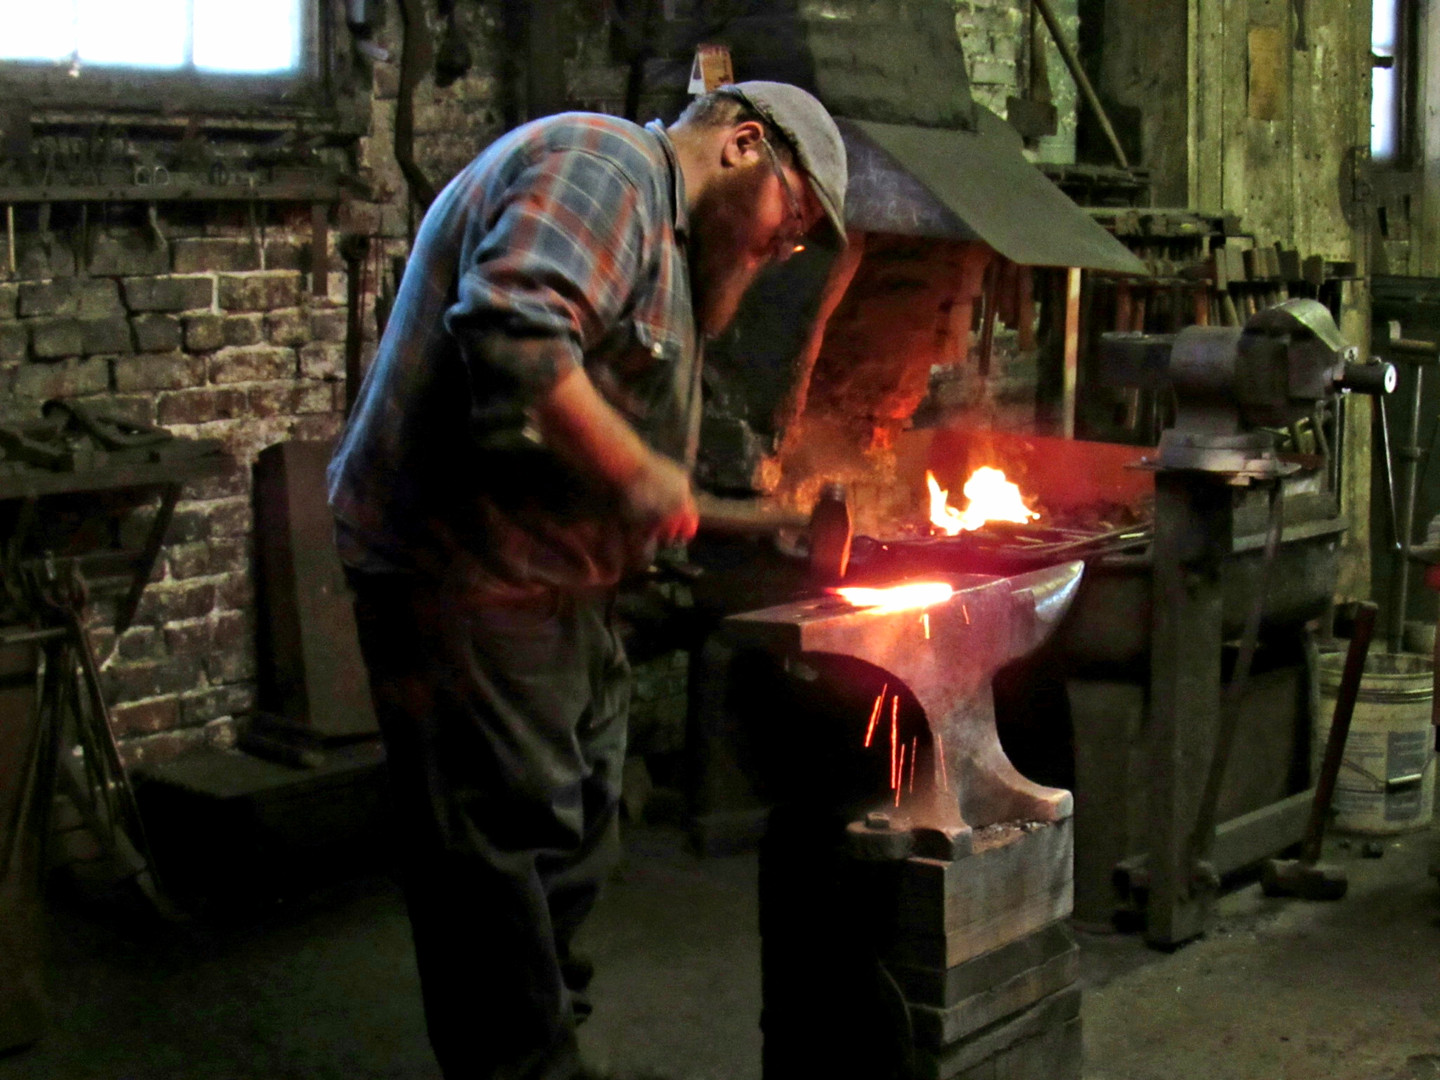 Blacksmith of Trenton - image by Rob Kee